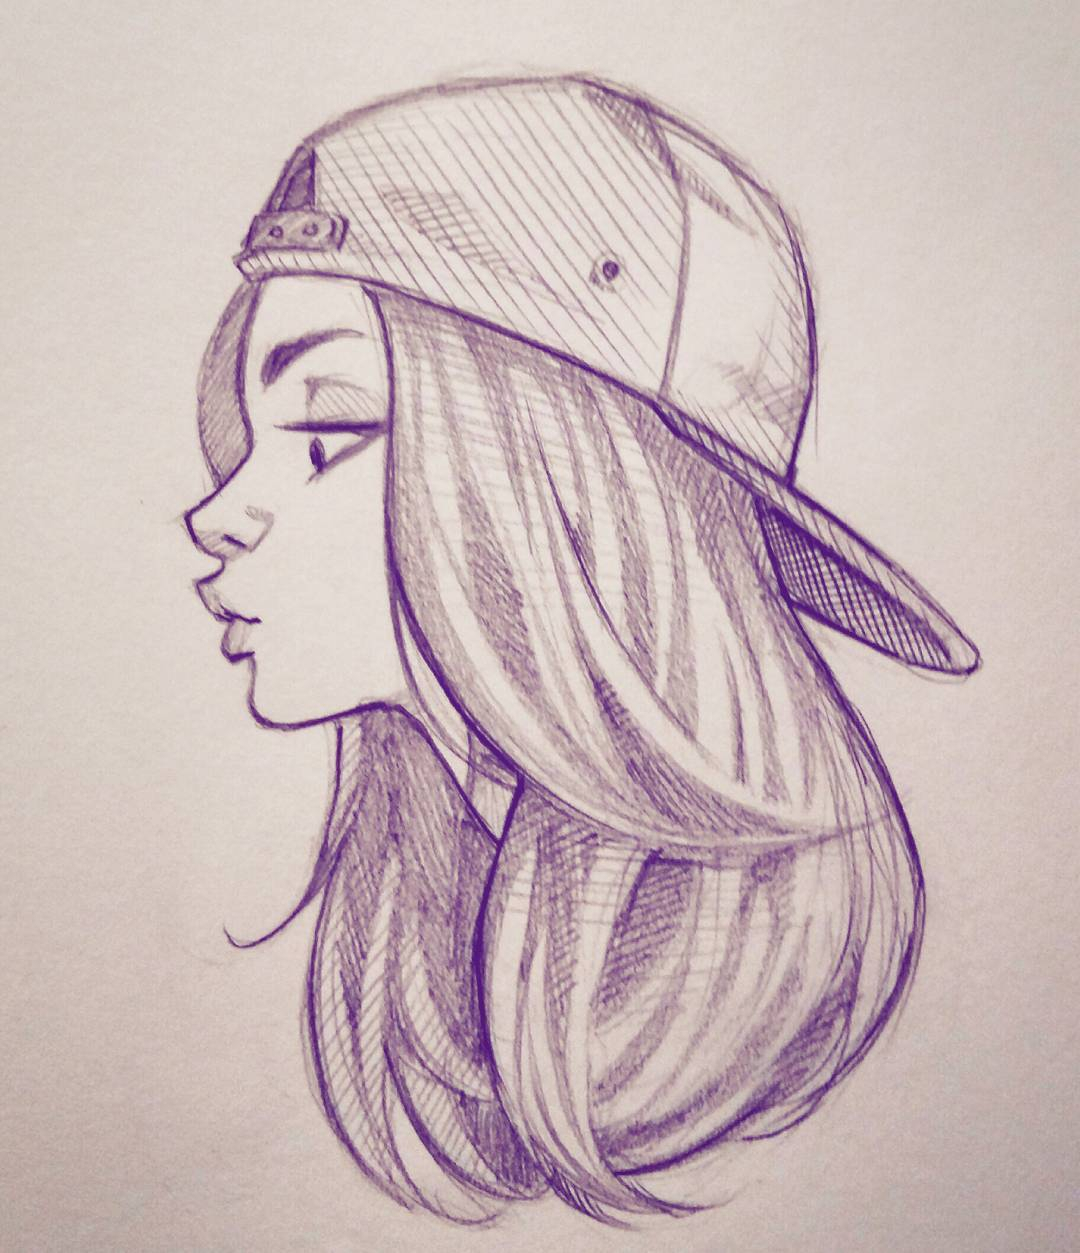 1080x1253 I Sketch Wallpaper Only Girl Face Simple Sketch Girls Only Face